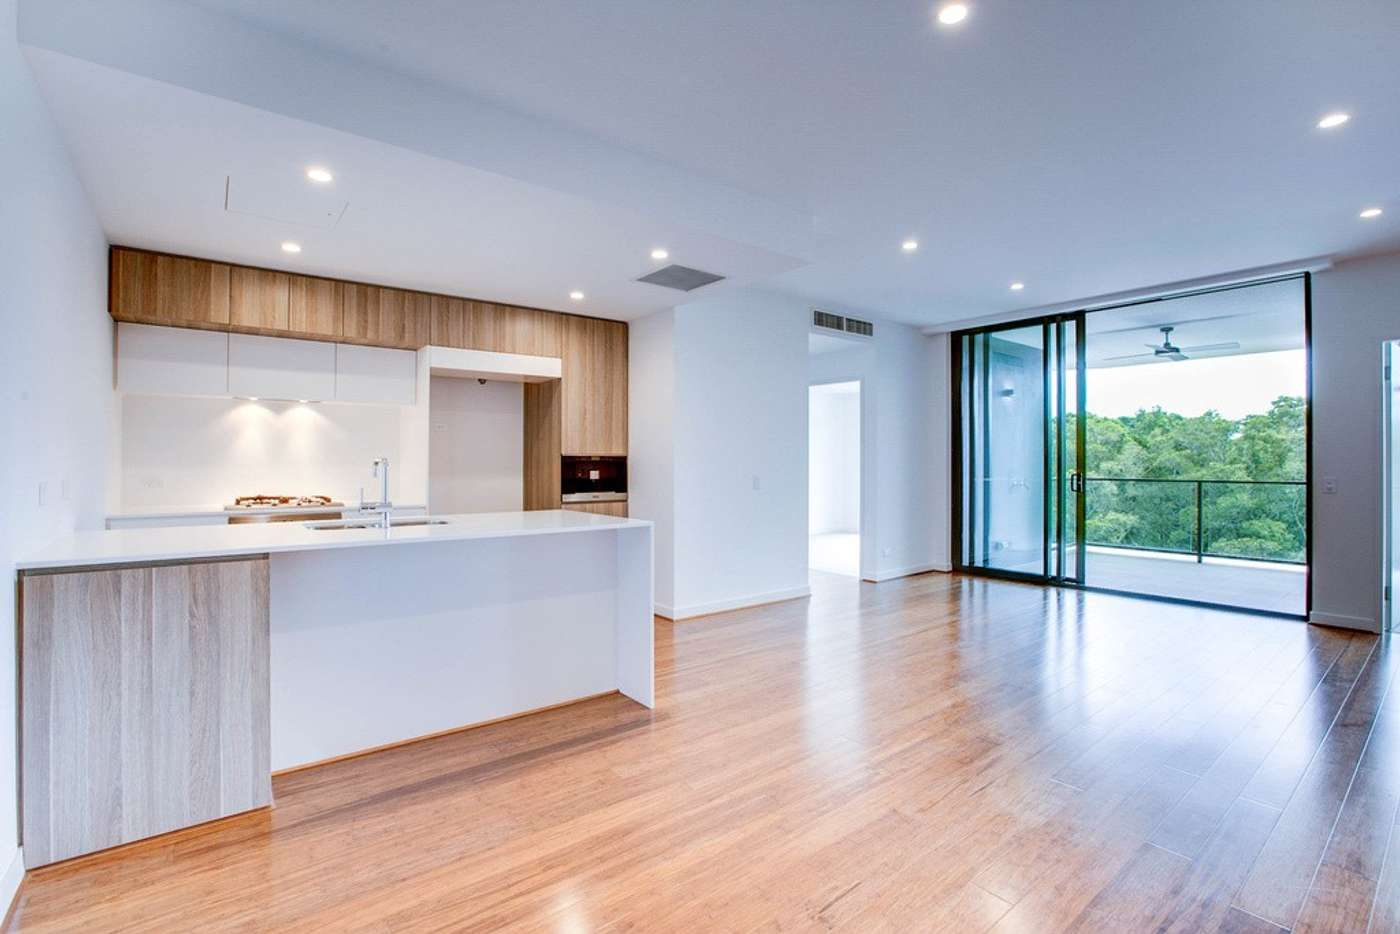 Main view of Homely apartment listing, 4311/18 Parkside, Hamilton QLD 4007